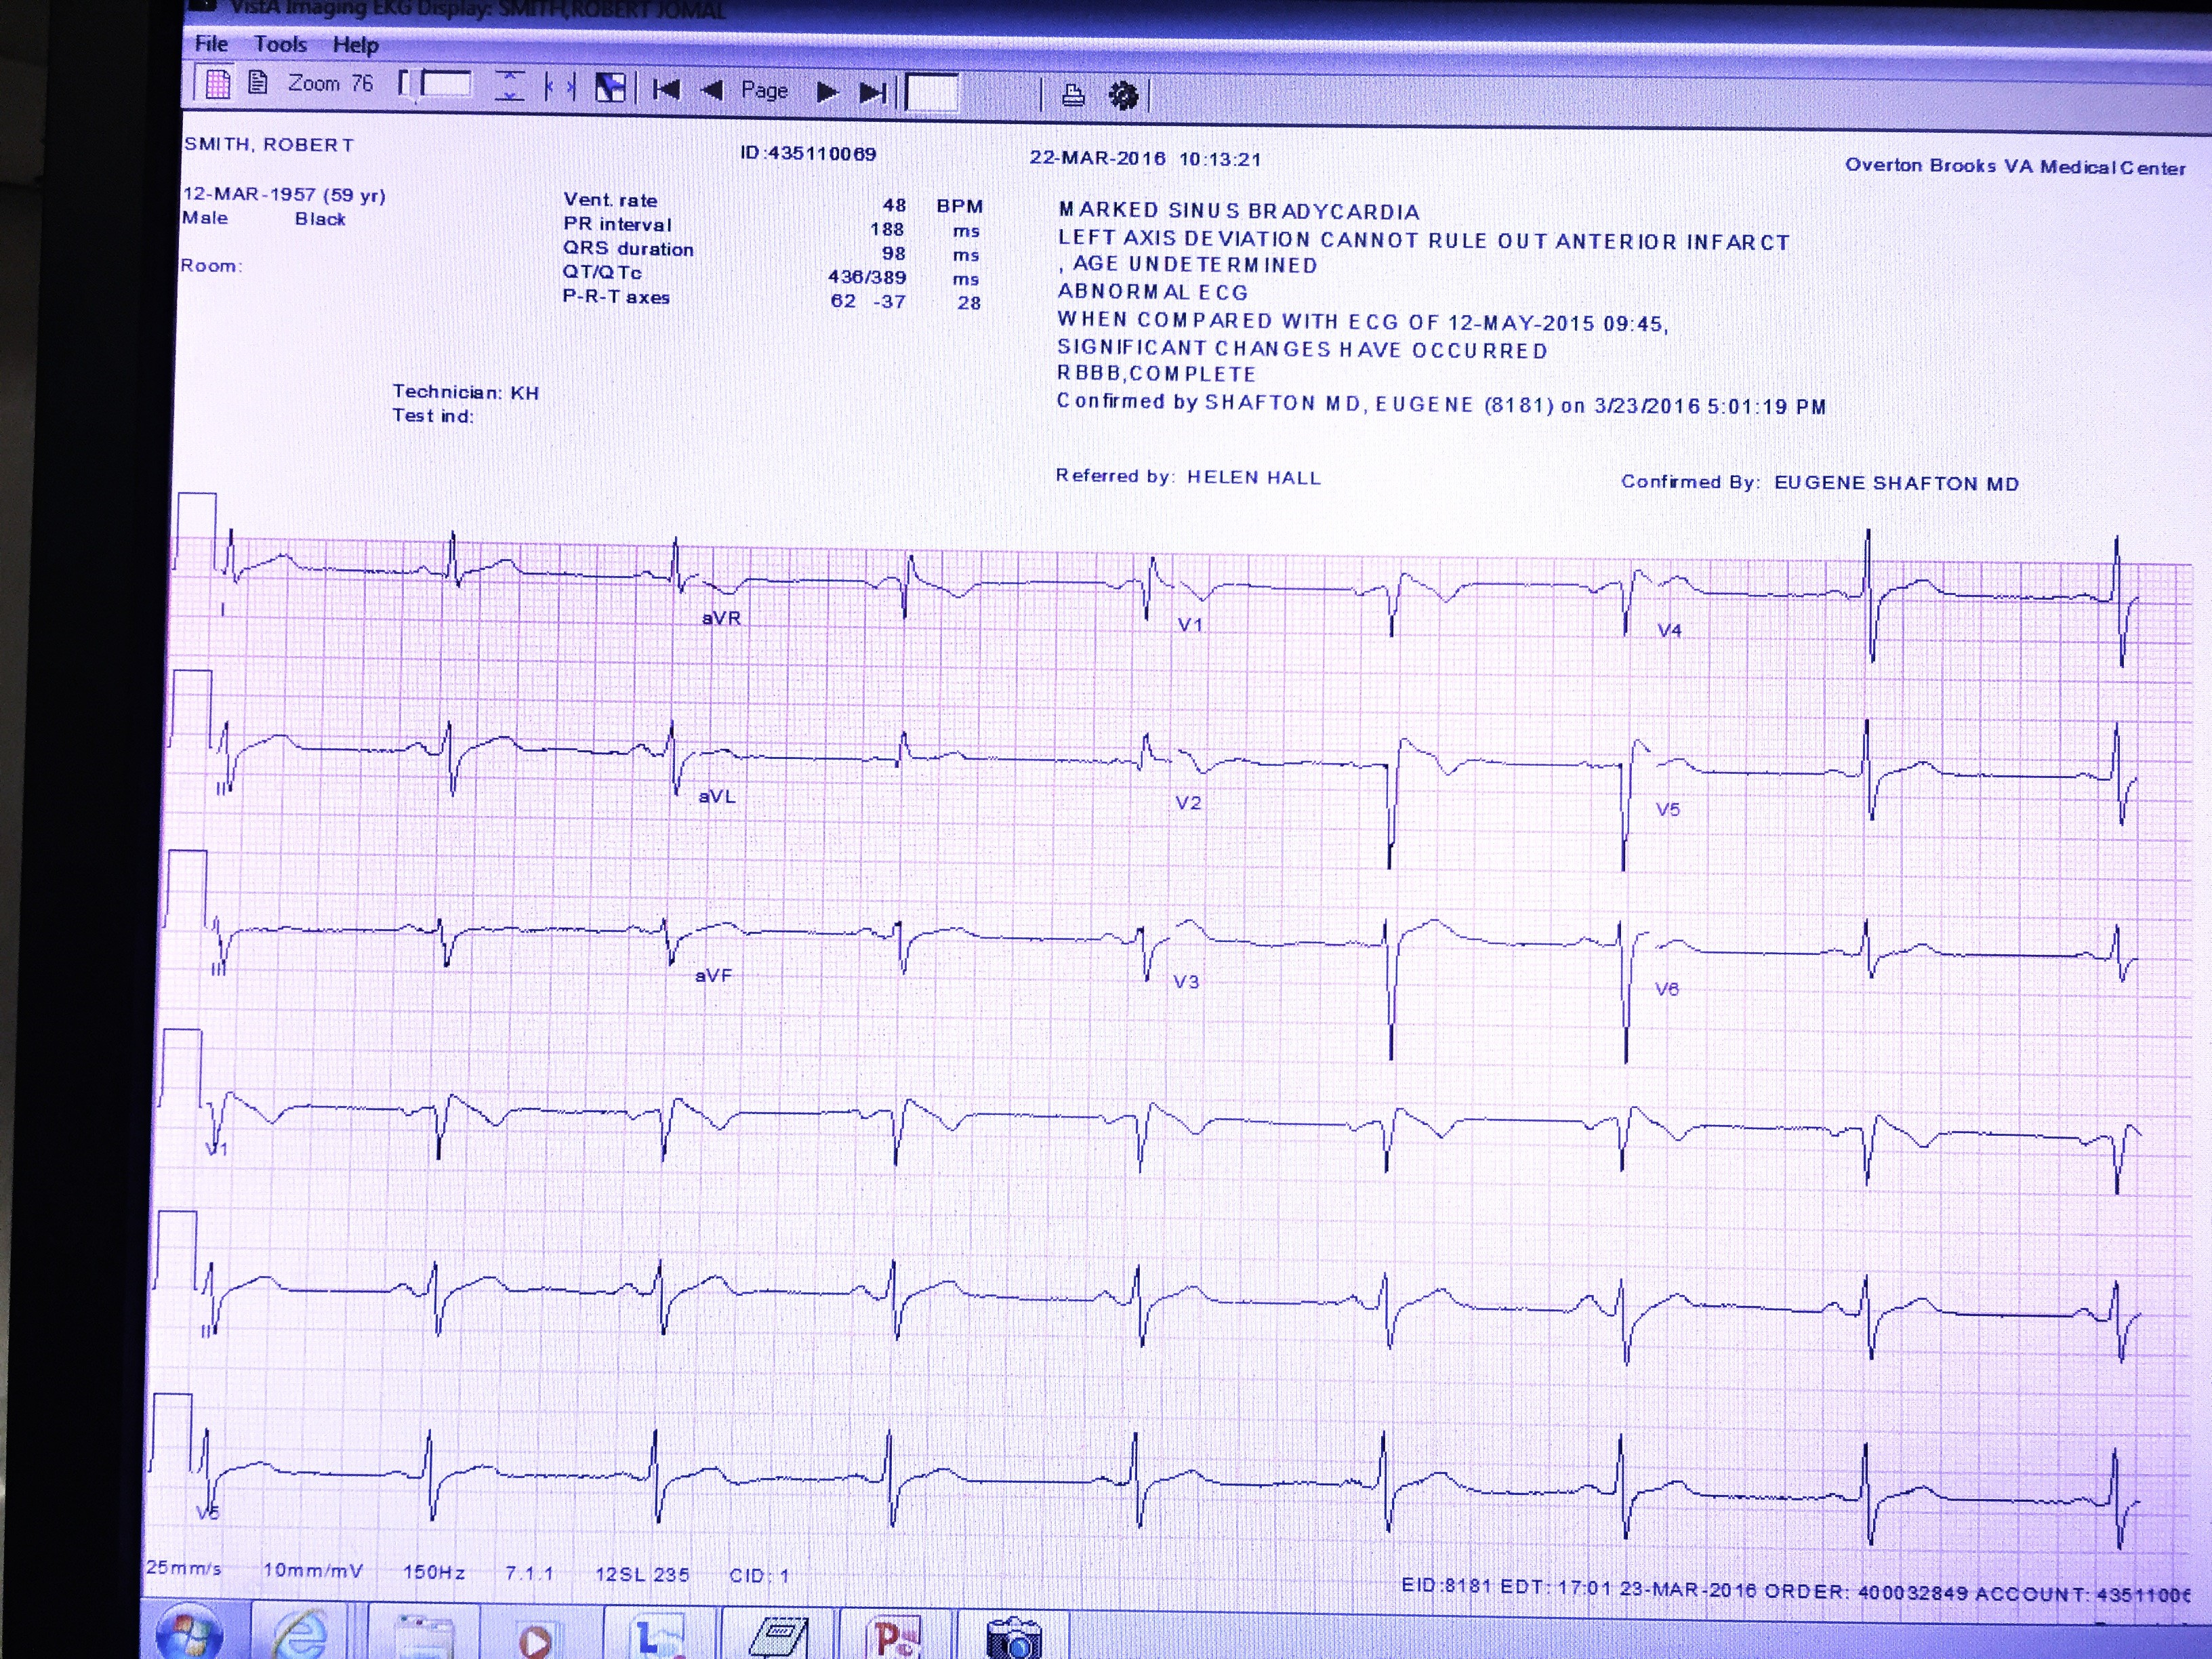 Electrocardiogram of patient with syncope.